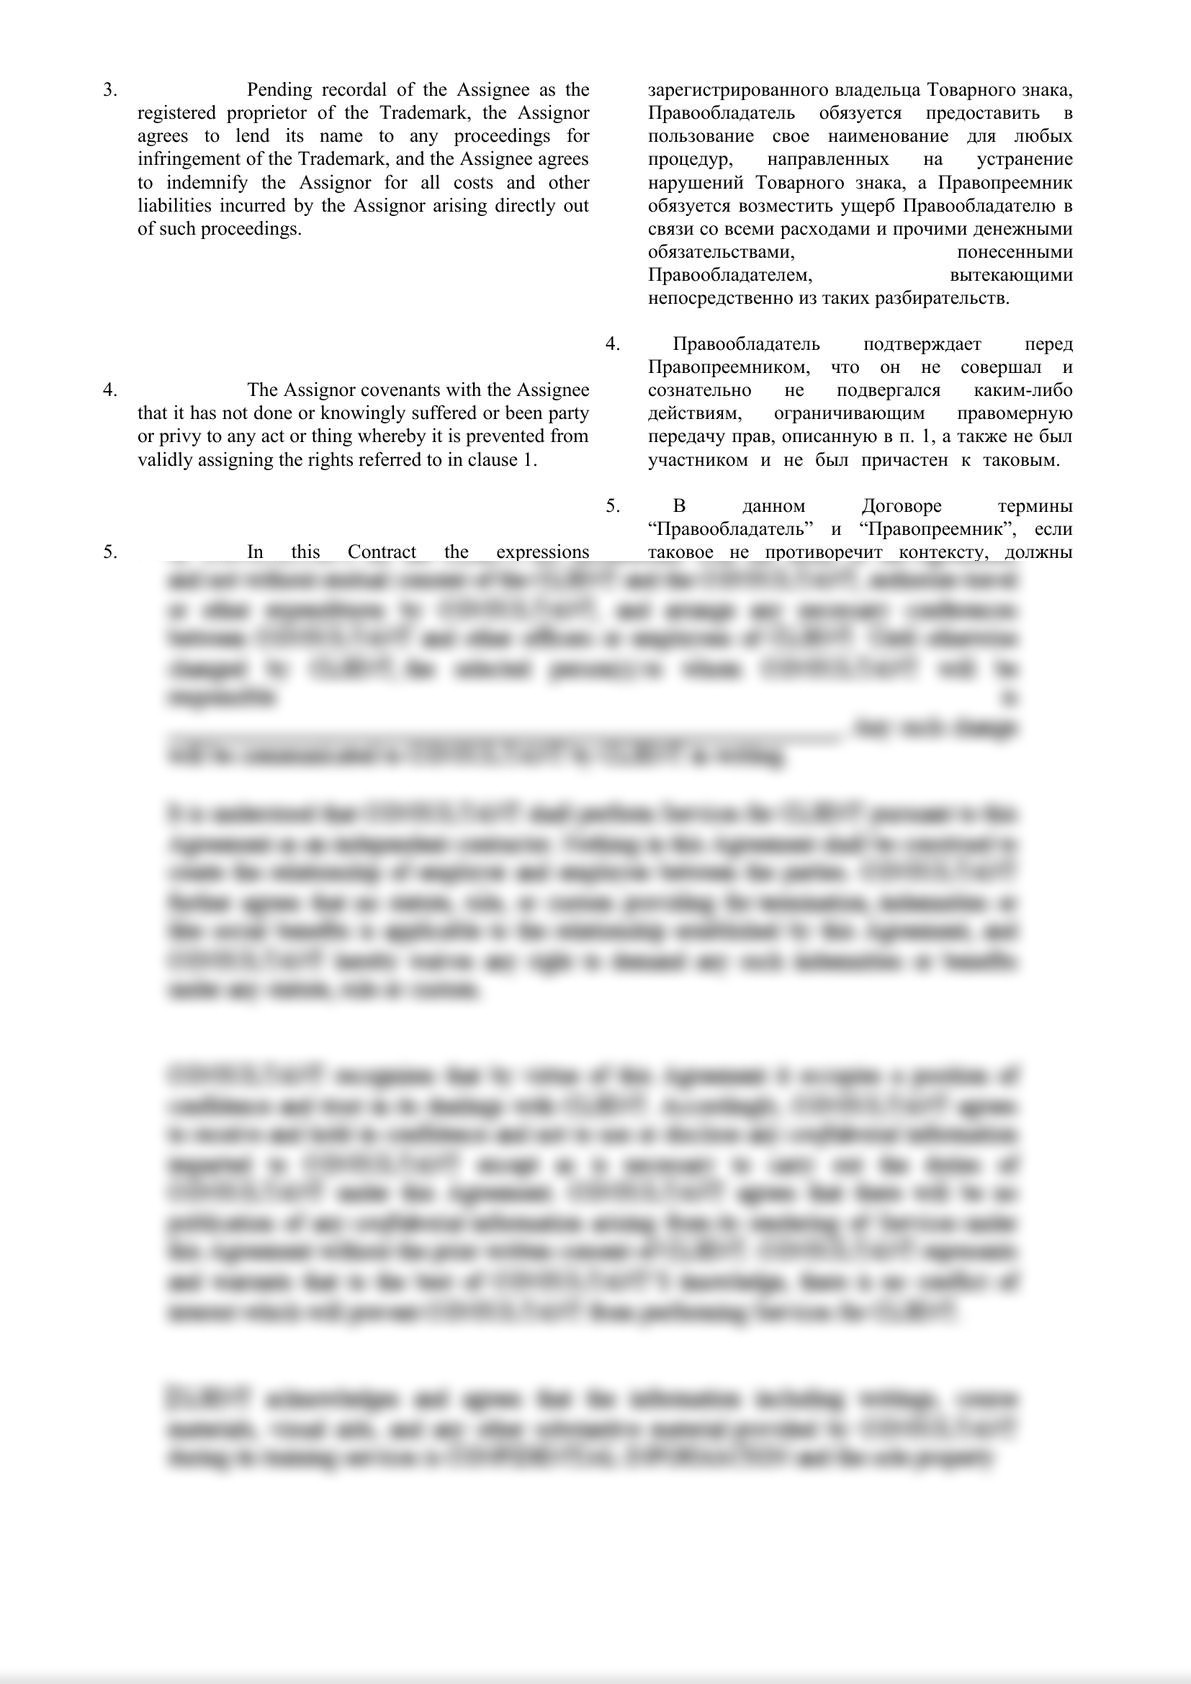 Russian Contract of assignment of exclusive right for the trademark-1